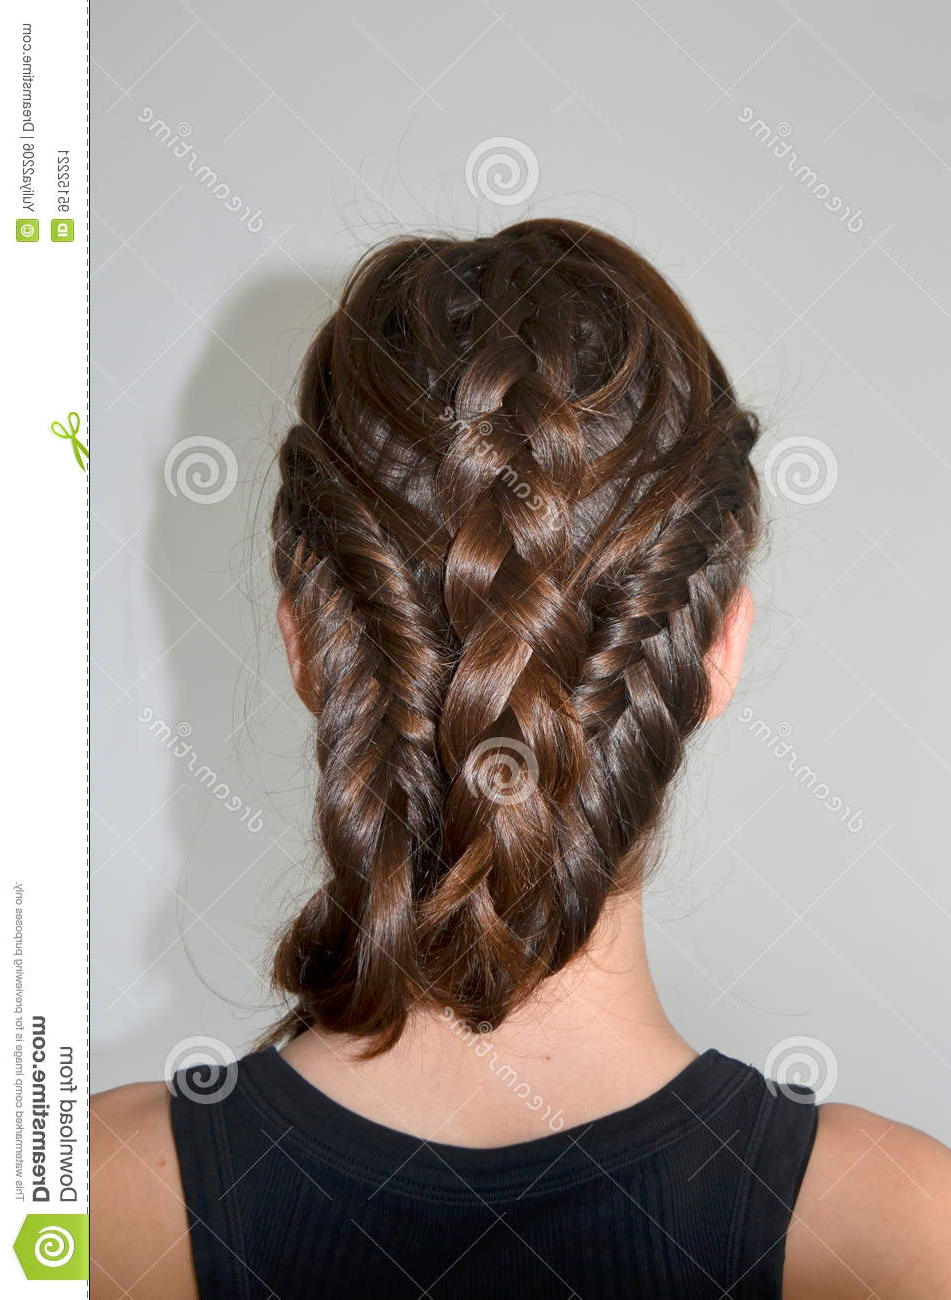 Well Liked Braided Shoulder Length Hairstyles Intended For Hairstyle Braiding On Medium Length Stock Image – Image Of (View 14 of 20)